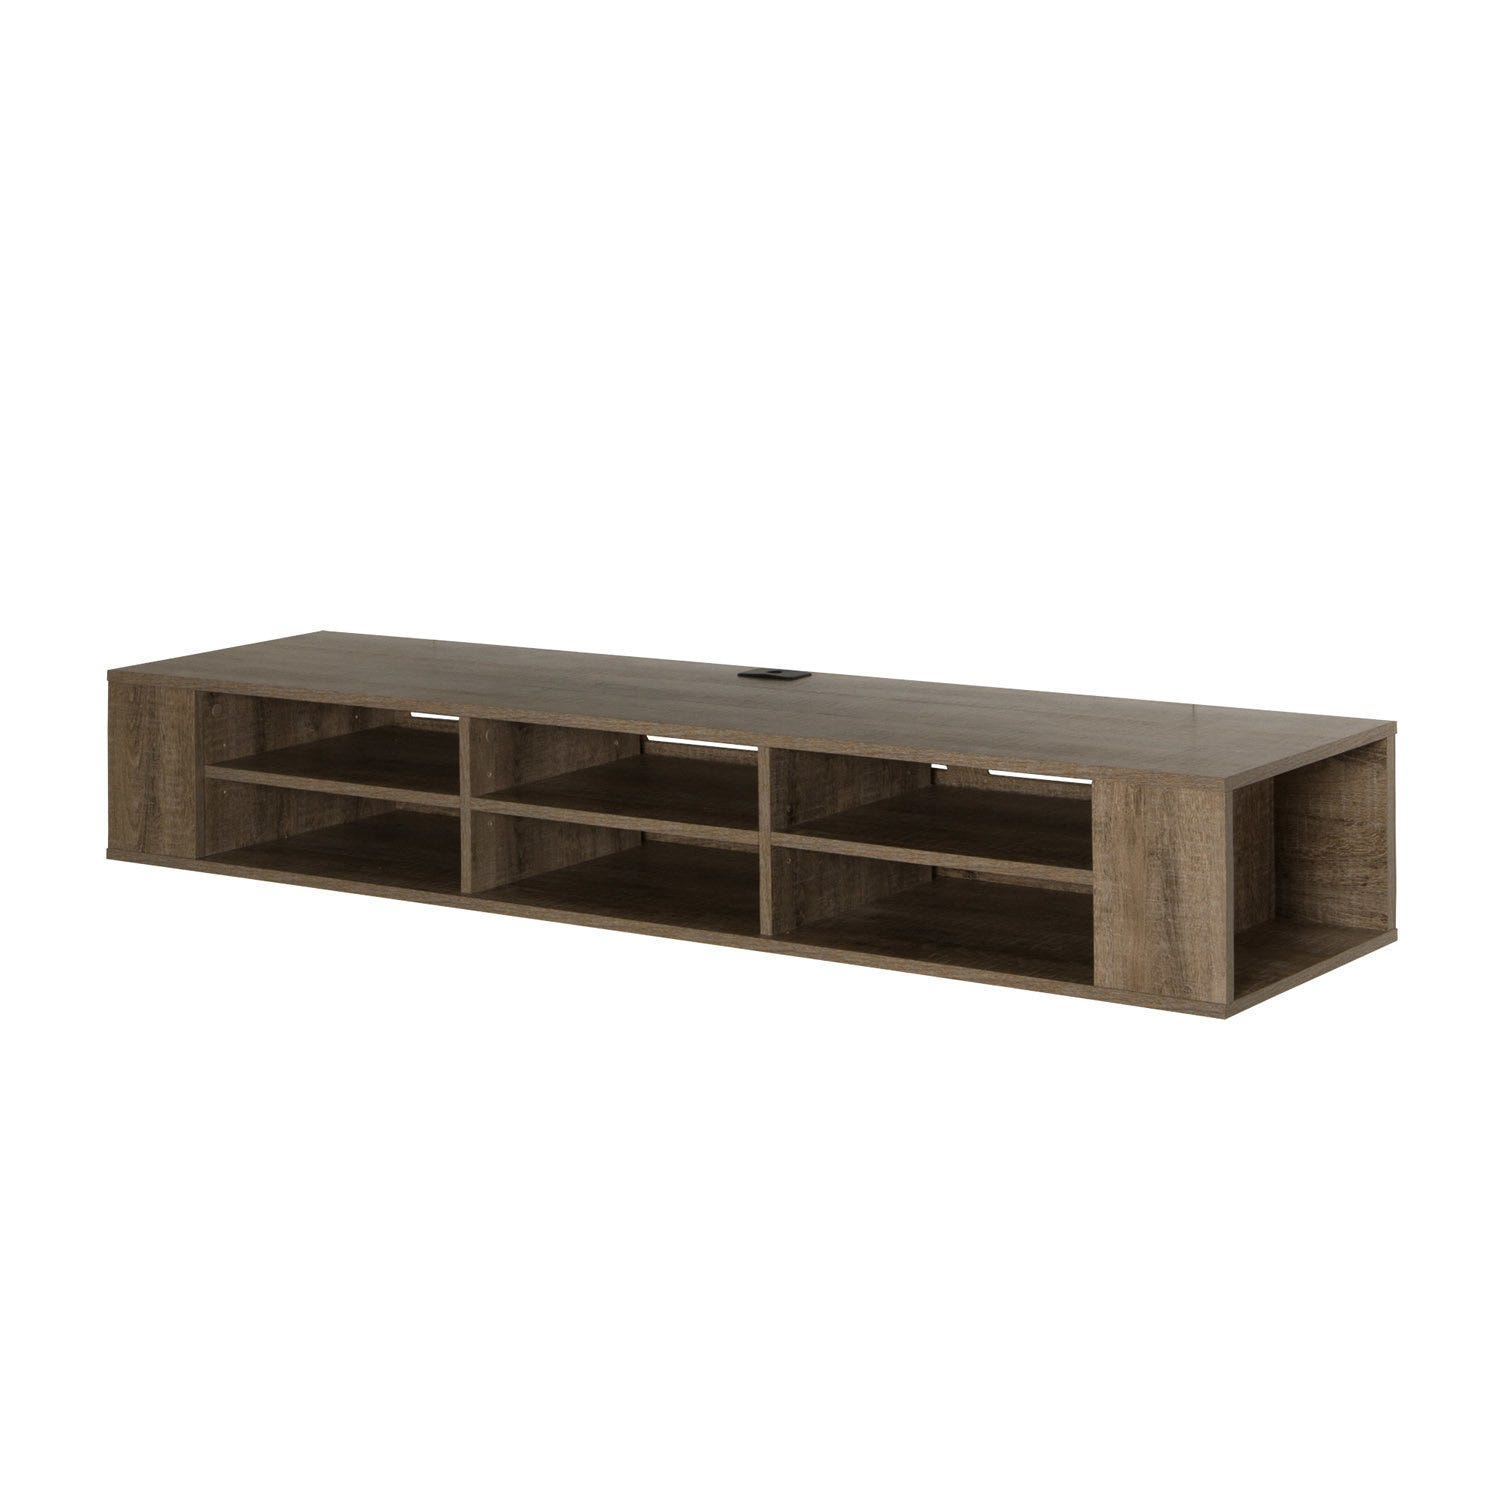 66 Wall Mounted Media Console Rd Furniture